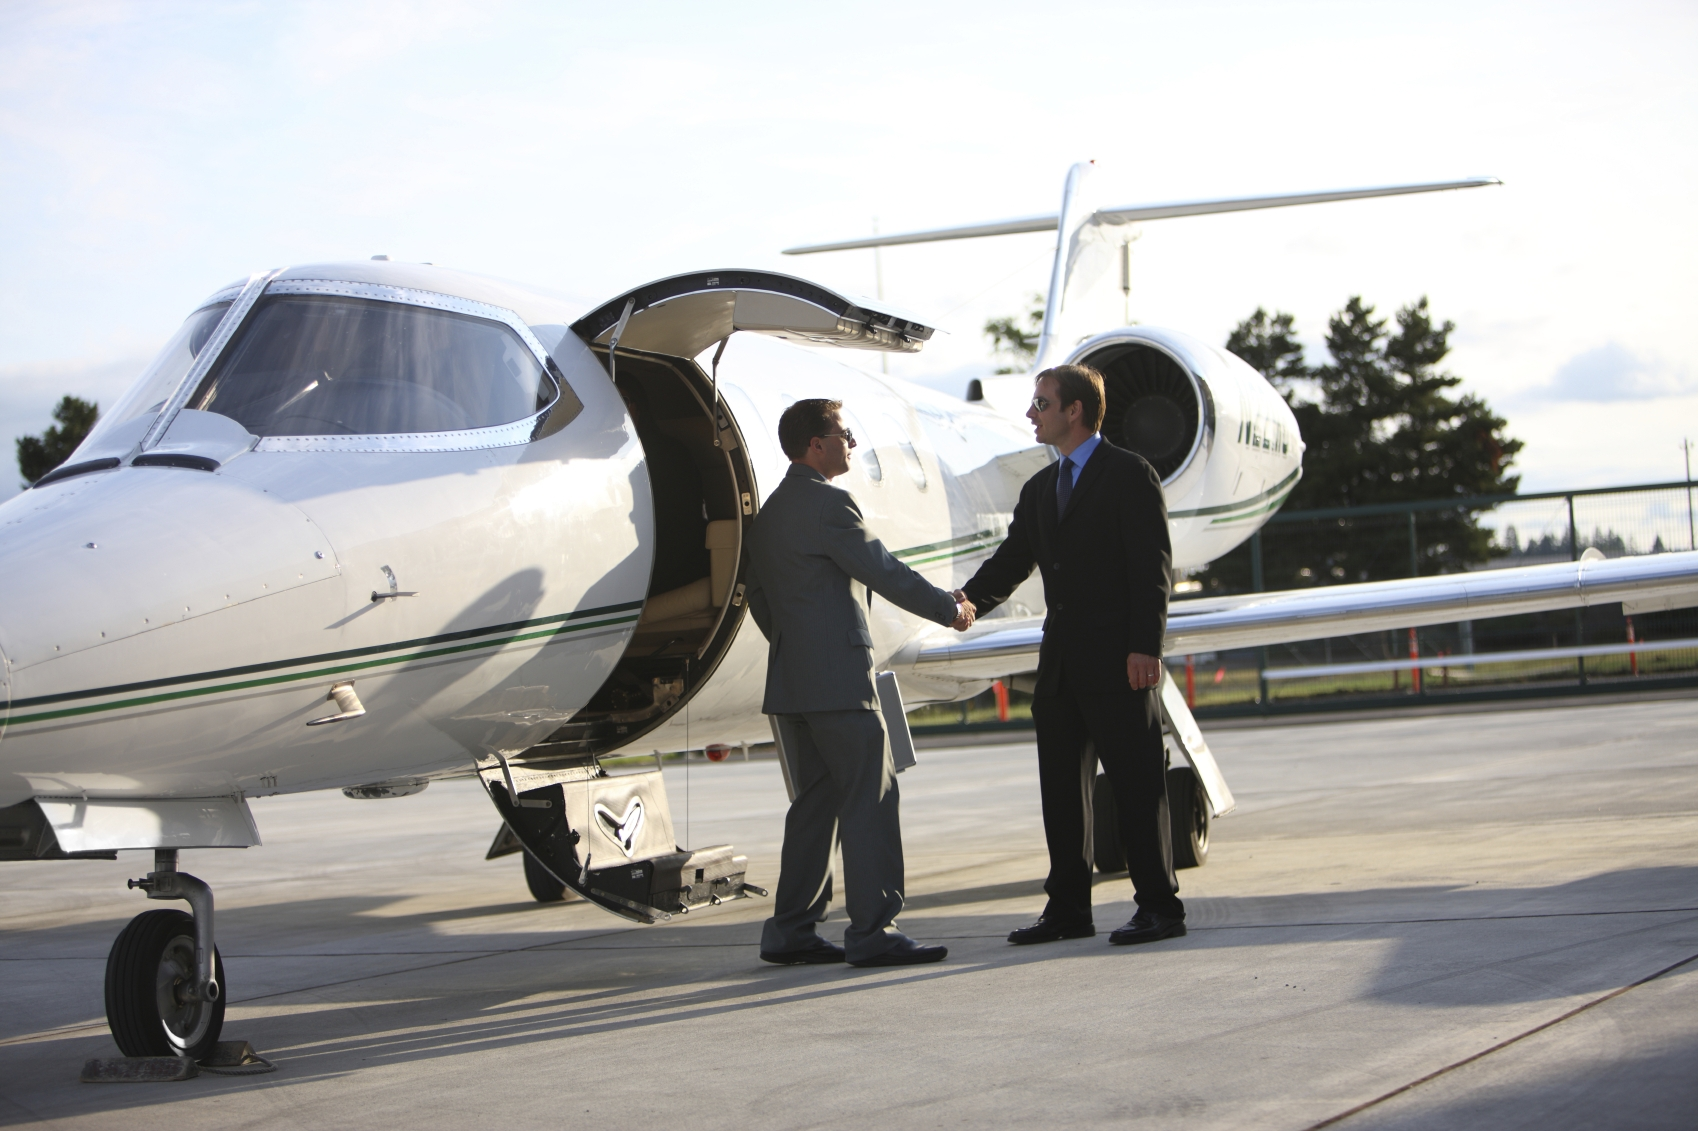 TEB-FLL Private Jet Charter